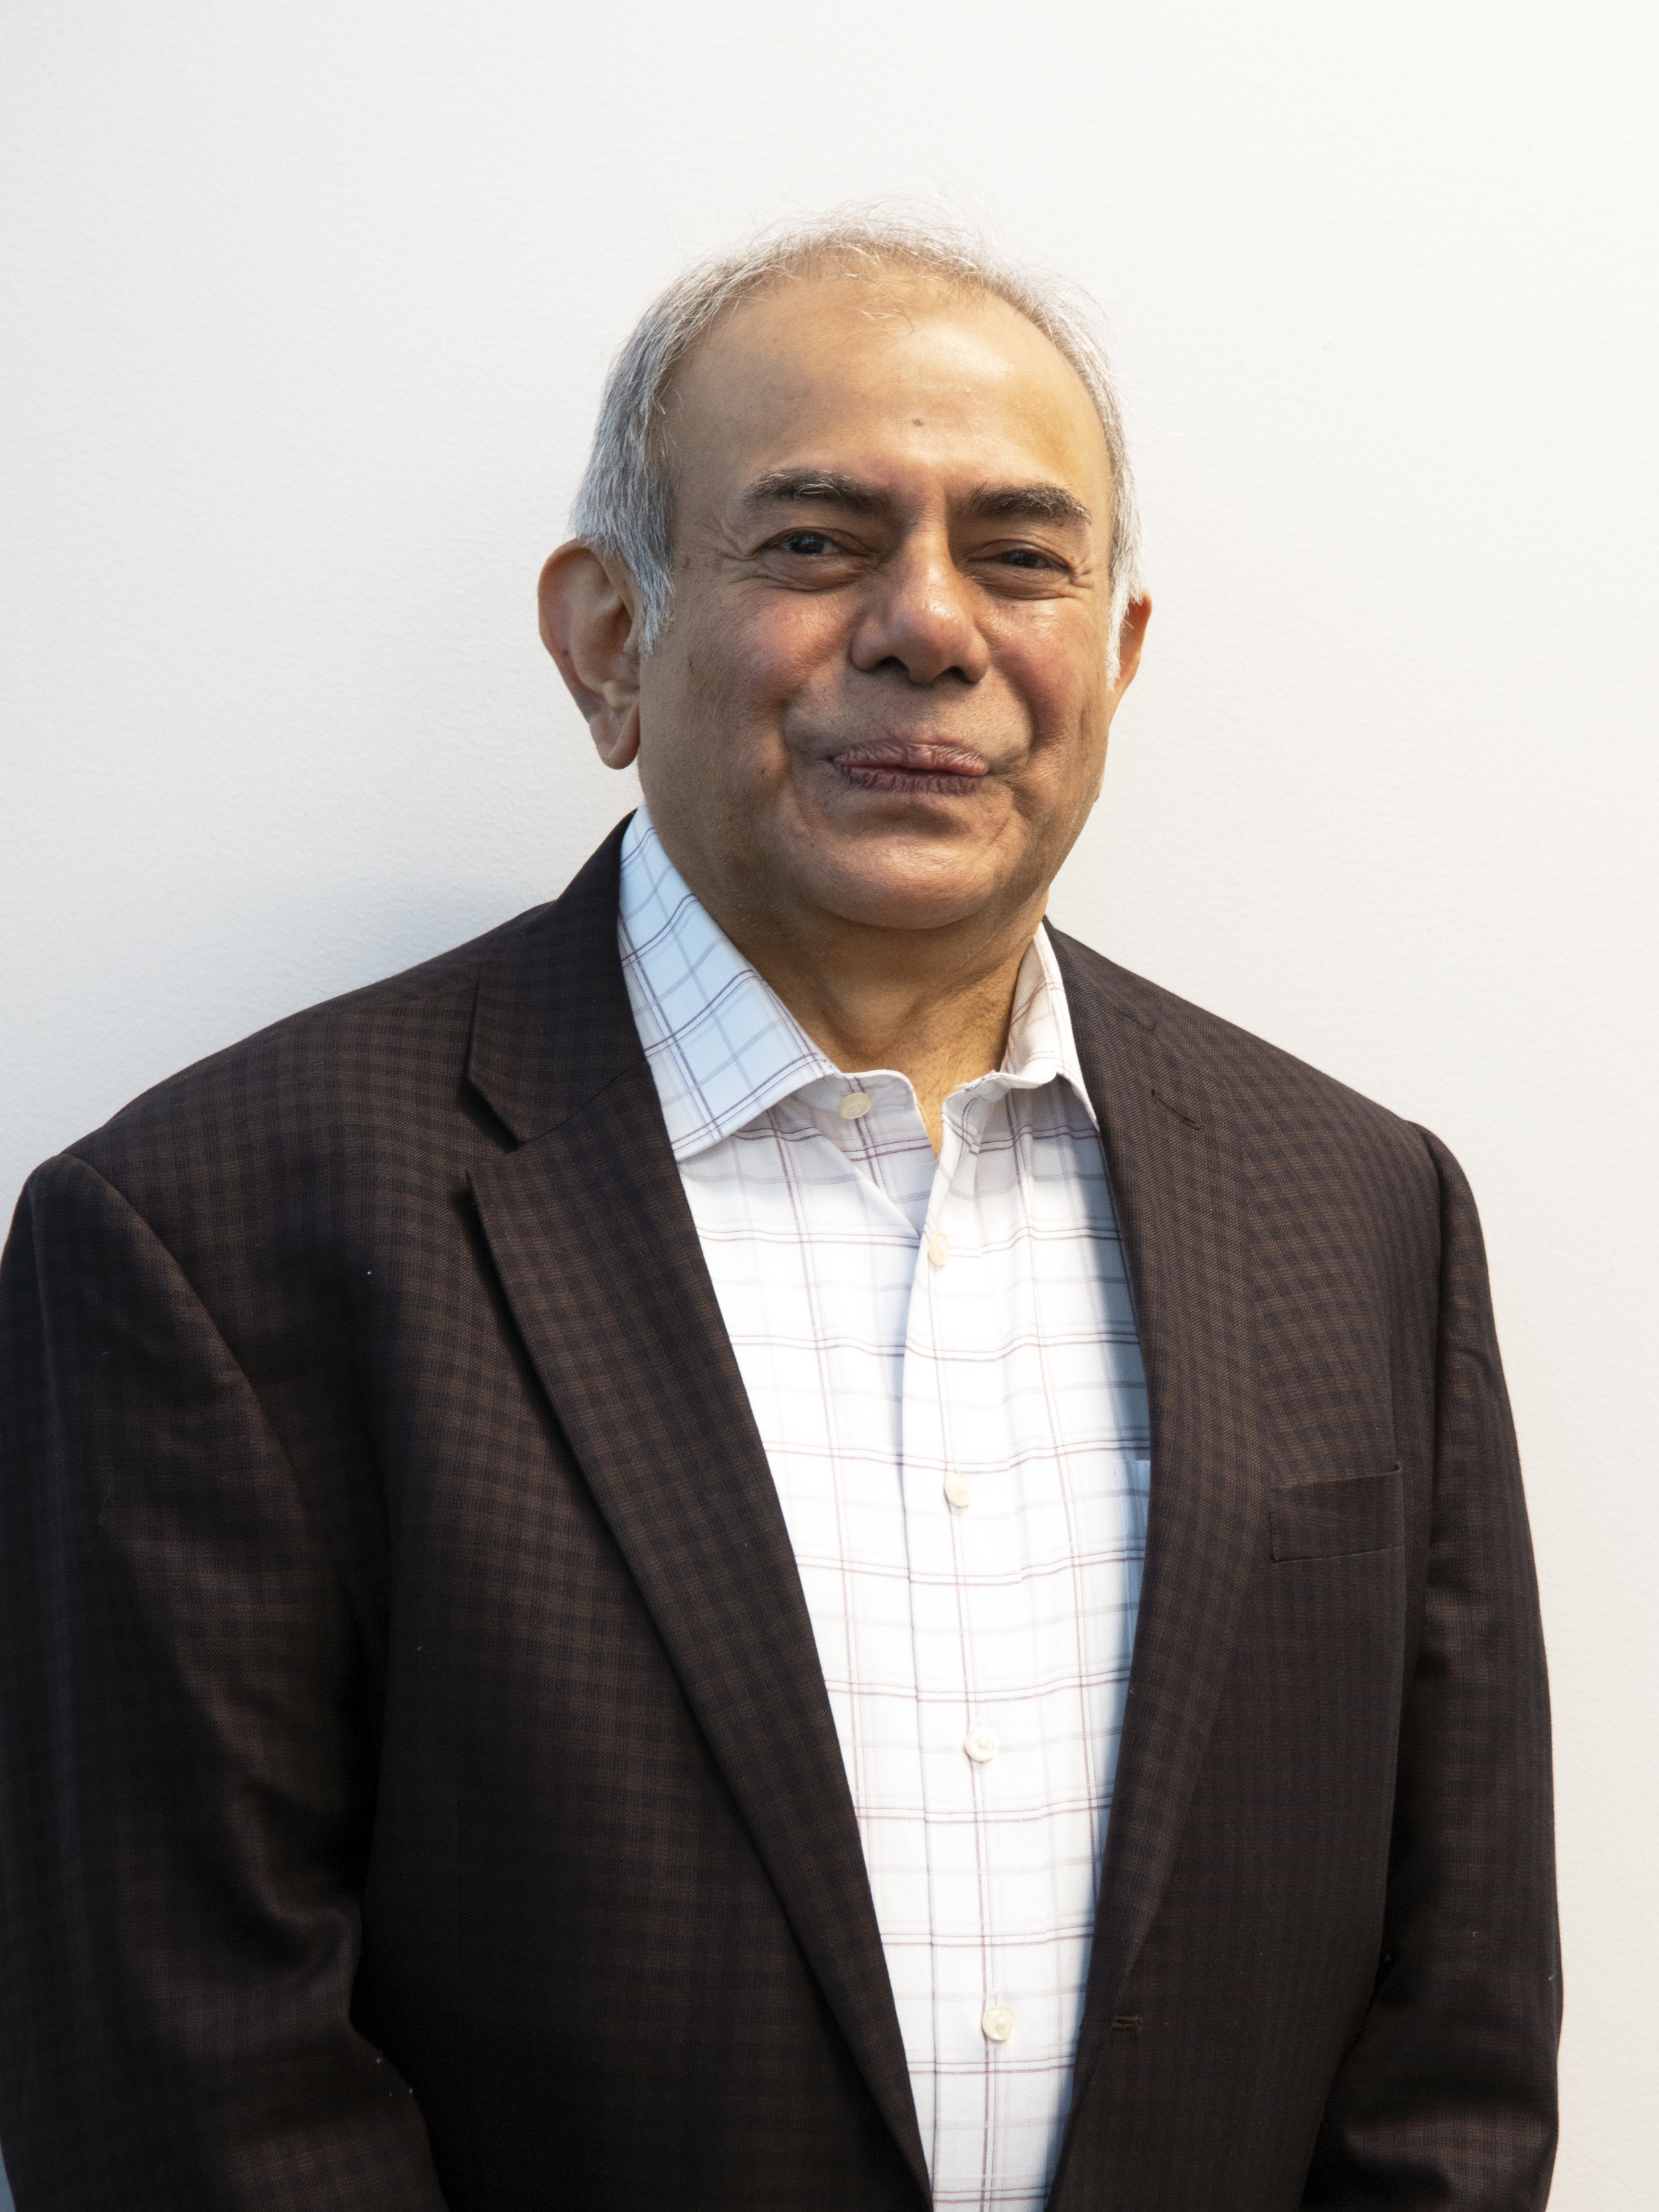 Dr. Ganesh Kishore  is an entrepreneur and has co-founded three successful entities since 2002. Two of the three entities are now parts of publicly traded entities (Tata/Rallis in India and Evolva in Switzerland) while the third business entity (Mogene LC in USA) serves both as an incubator of new ideas as well as a provider of genomic services across agriculture, health care and environment. He serves on the board of three publicly listed entities, three privately held companies and the Advisory Board of Washington University. He is also an advisor to multinational companies and Scientific American.  Dr. Kishore has a distinguished track record of accomplishments in biotechnology research and development and business. He left DuPont in 2007 where he was Chief Biotechnology Officer to join Malaysian Life Science Capital Fund (MLSCF) as its CEO and later co-founded Spruce Capital Partners in 2013.  After receiving a Ph.D. in biochemistry from Indian Institute of Science, Dr. Kishore received postdoctoral training in chemistry and biology and also served as a Robert A Welch Fellow at The University of Texas at Austin. He then joined Monsanto Company as a Senior Research Biochemist, responsible for developing processes for the synthesis of Aspartame, the active ingredient of Nutrasweet and Equal. He subsequently took leadership for discovering and developing the Roundup Ready technology and ultimately the entire agricultural technologies and biotechnology for Monsanto. He was named a Distinguished Science Fellow, the highest honor bestowed upon scientists who have made outstanding contributions to the company but also the scientific field in general, and Assistant Chief Scientist of the company.  In 2002, Dr. Kishore joined DuPont as the Chief Technology Officer for its Agriculture and Nutrition Platform and took over the role of Chief Biotechnology Officer for the company in 2005. During his tenure at DuPont, he guided the acquisition of several key technology companies and relationships and bolstered the biotech competence within the company.